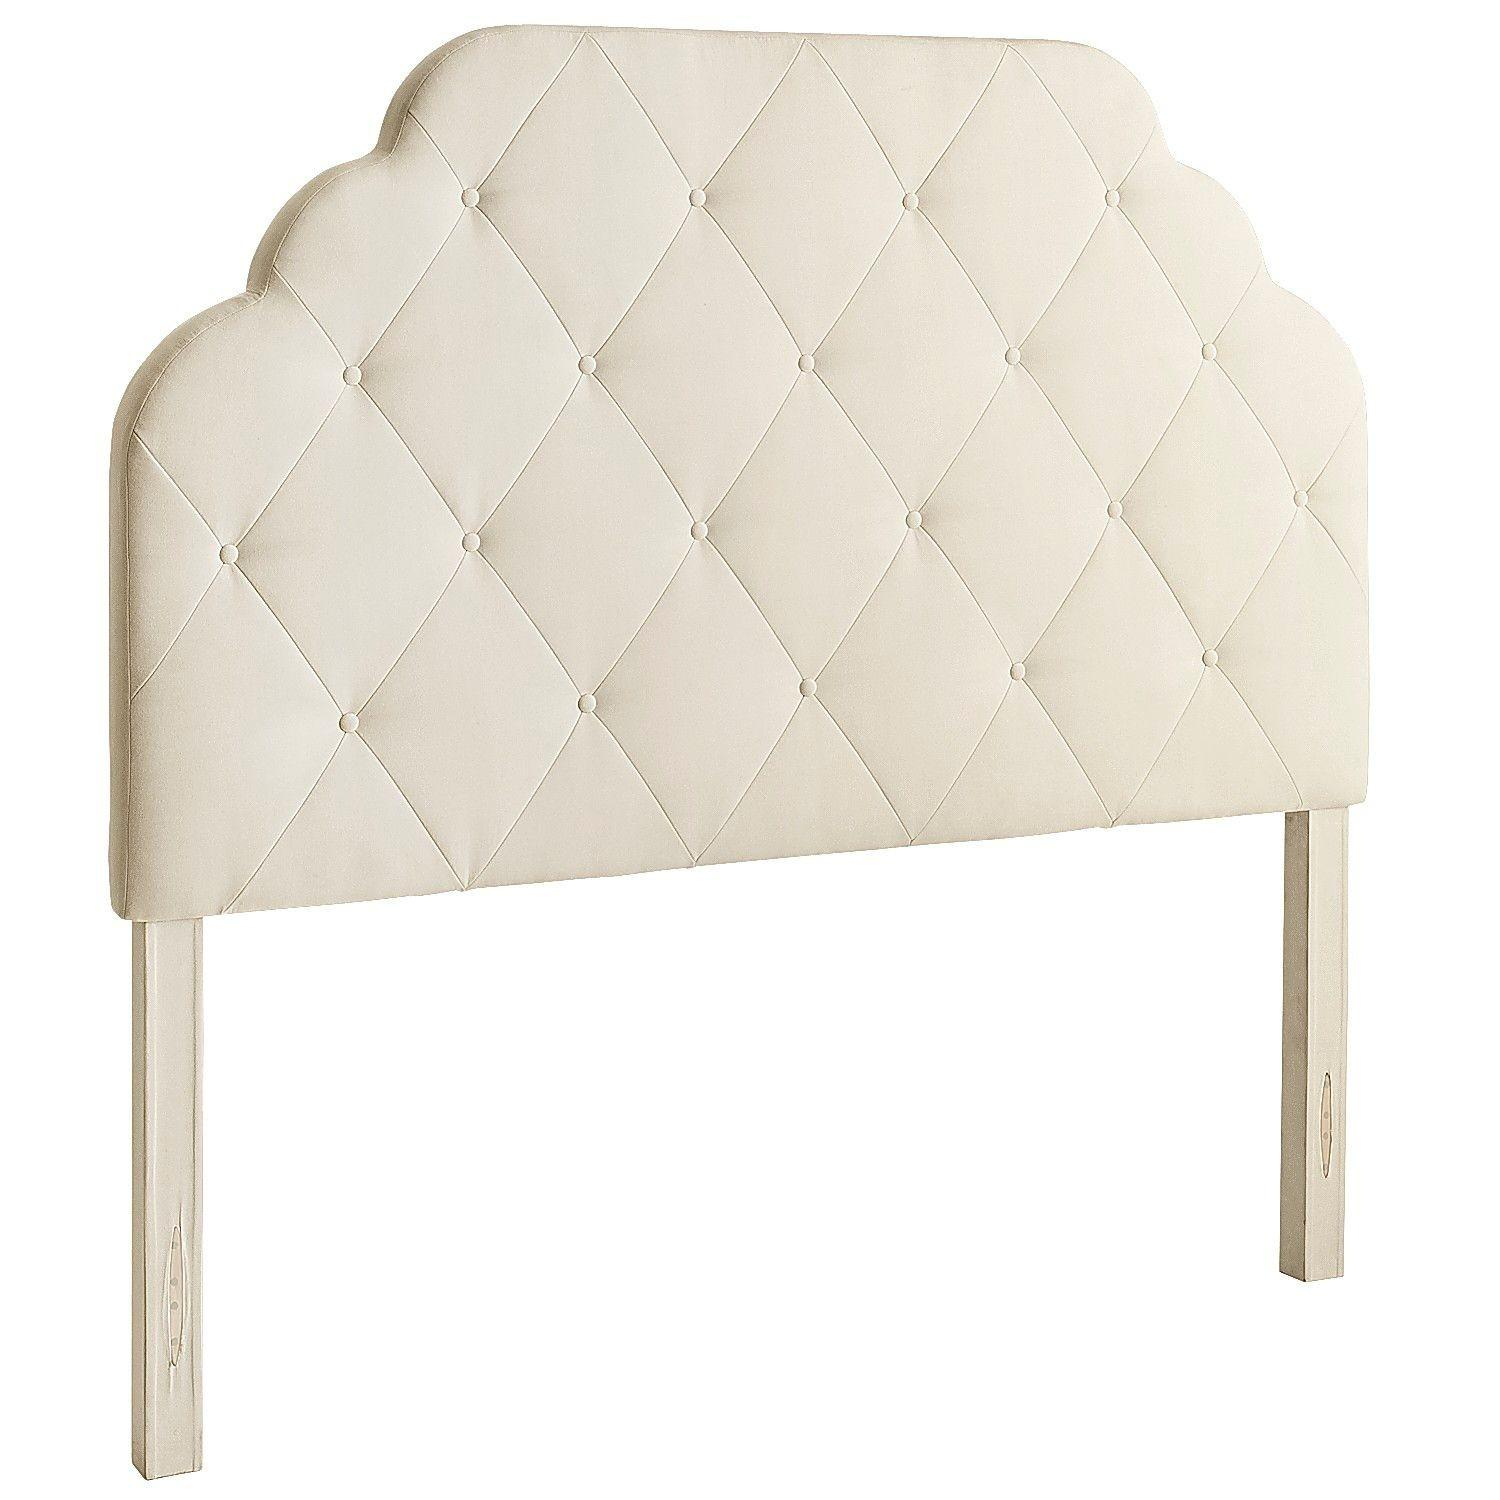 Pier 1 Hayworth Upholstered Full Ivory Headboard in Ivory